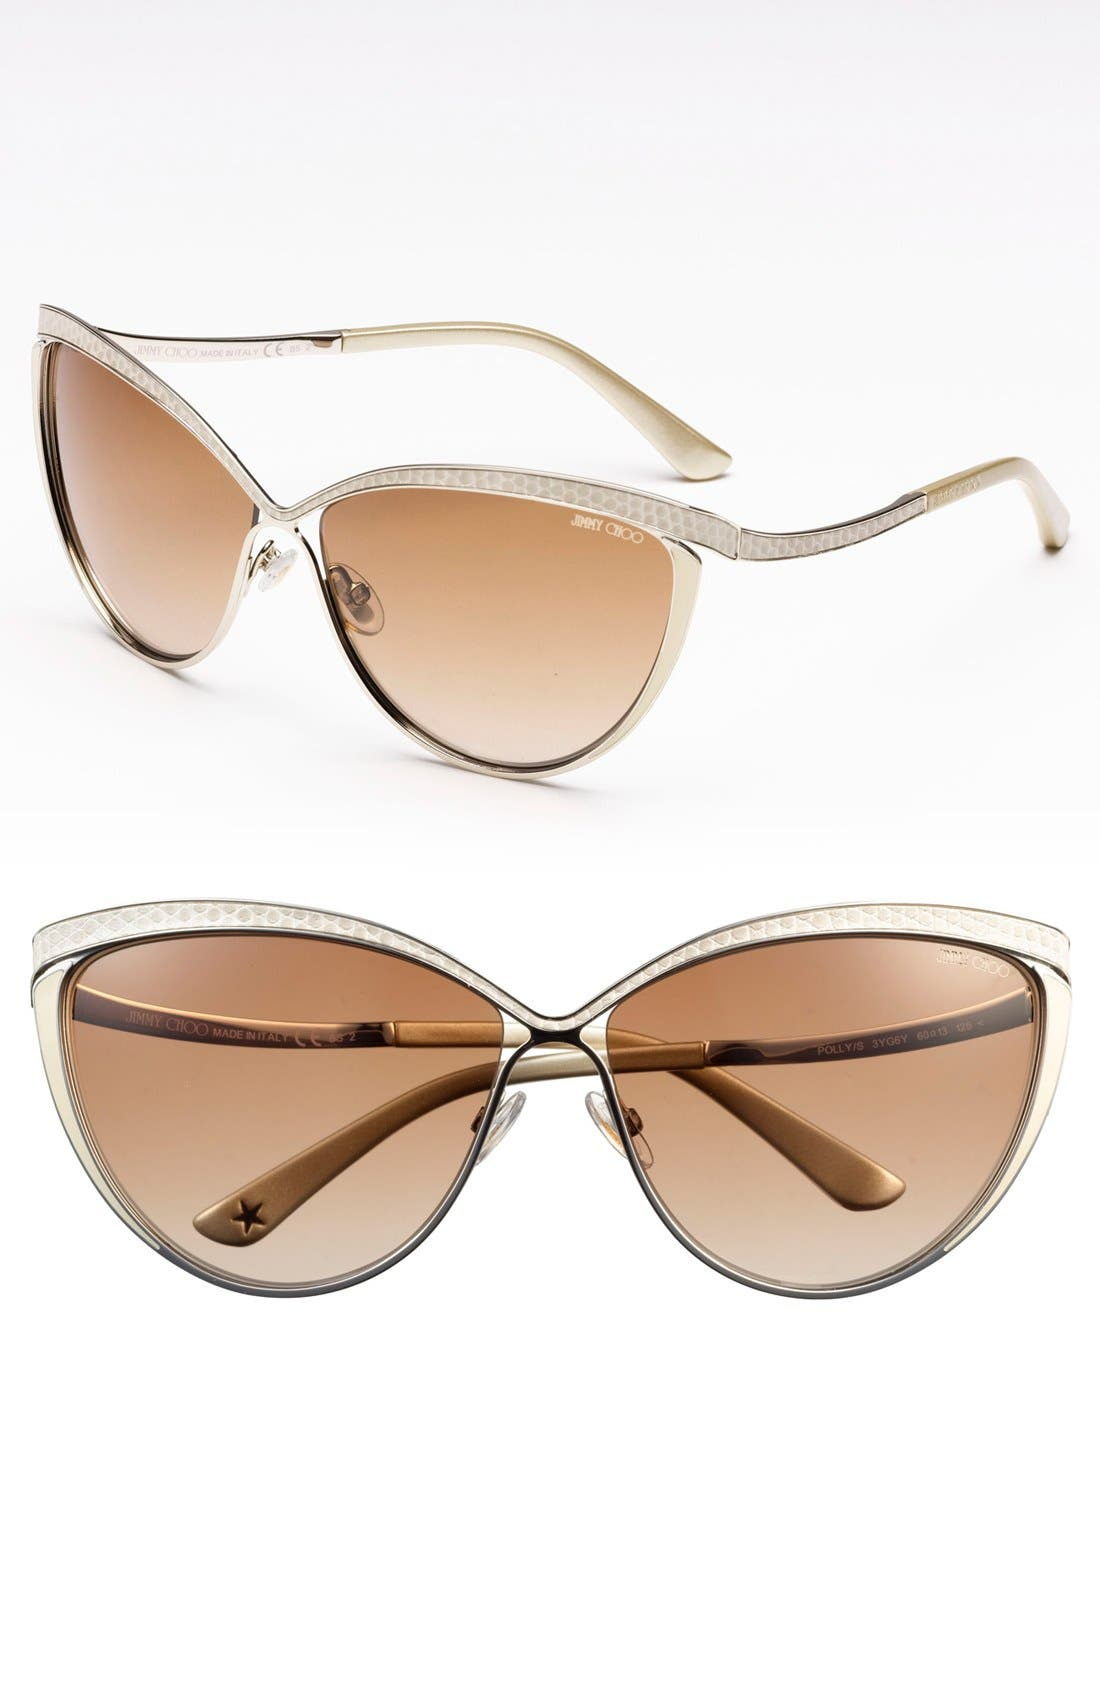 Alternate Image 1 Selected - Jimmy Choo 60mm Retro Sunglasses